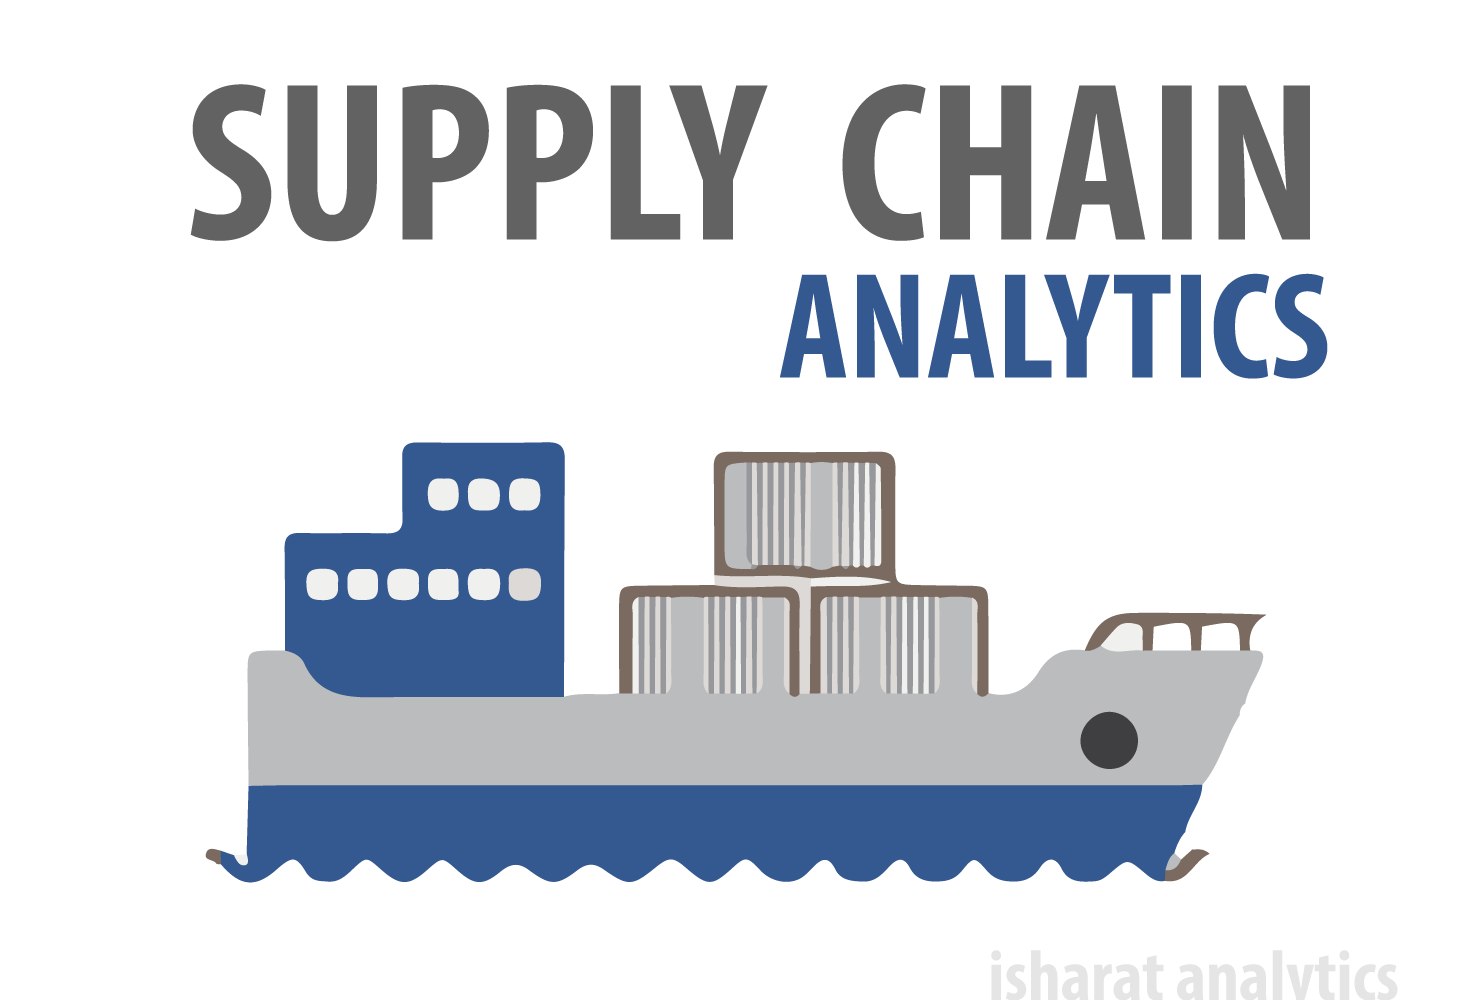 Getting extra reach with advanced Supply Chain Analytics